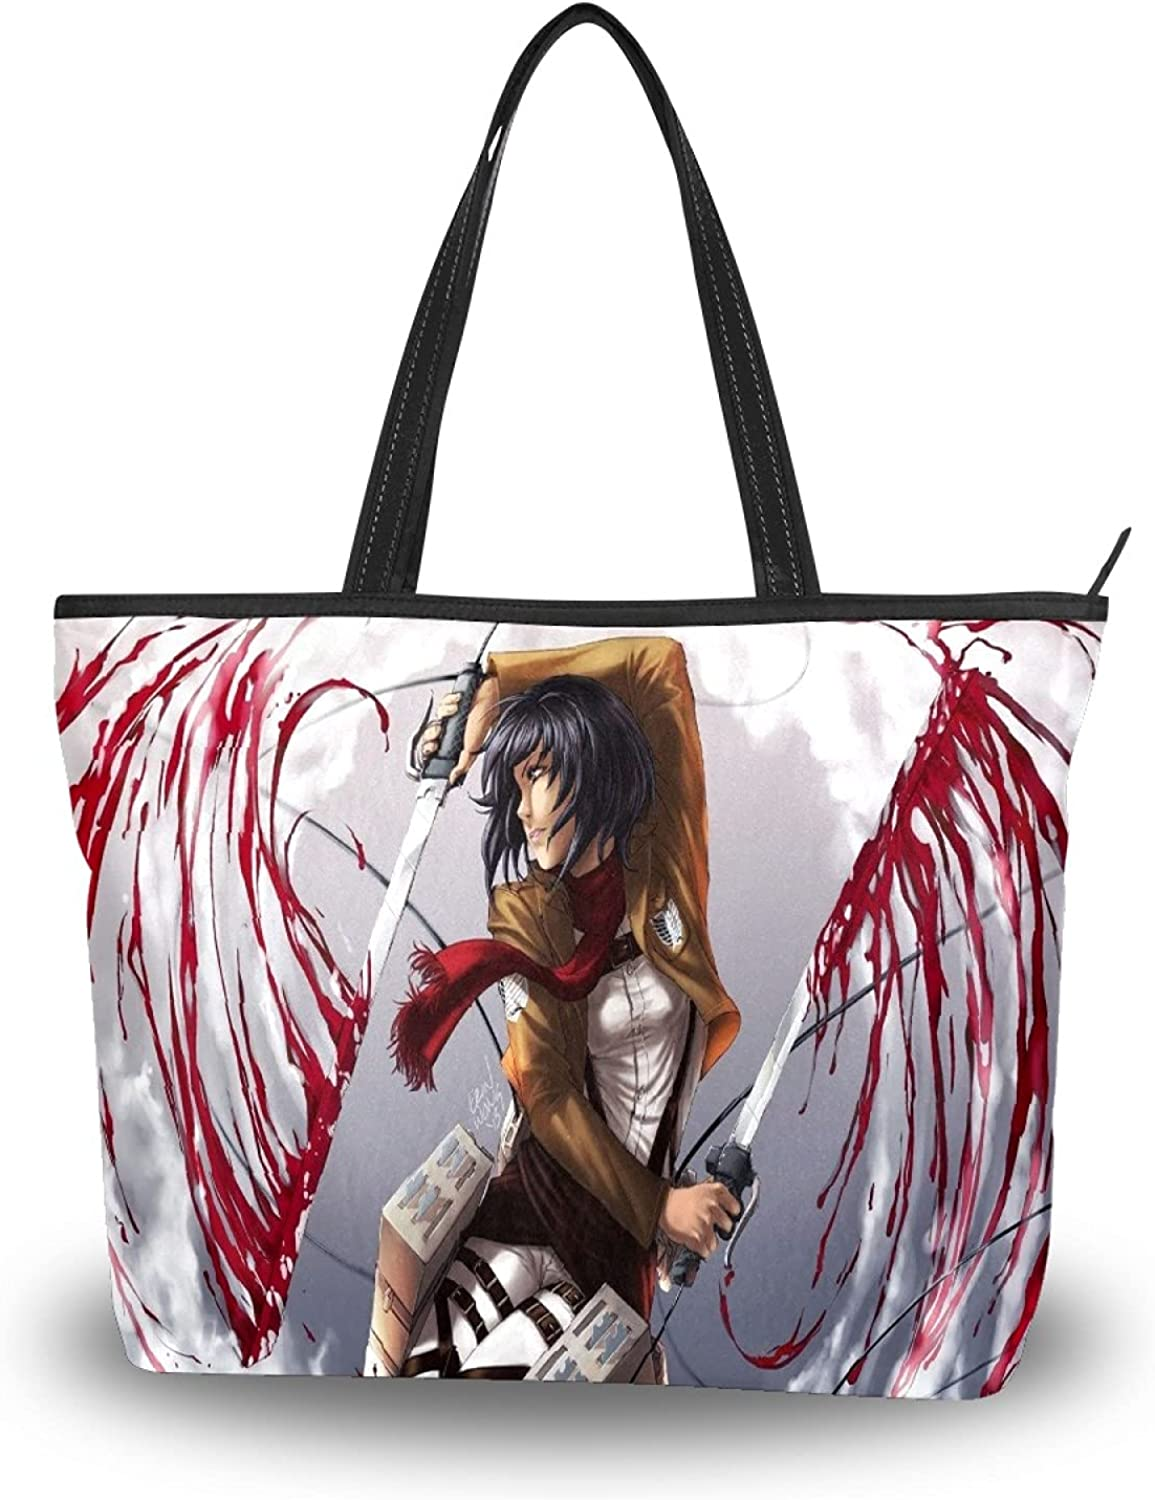 Womens Tote Bag Complete Our shop most popular Free Shipping Shoulder Attack Satchel Top On Handle Titan